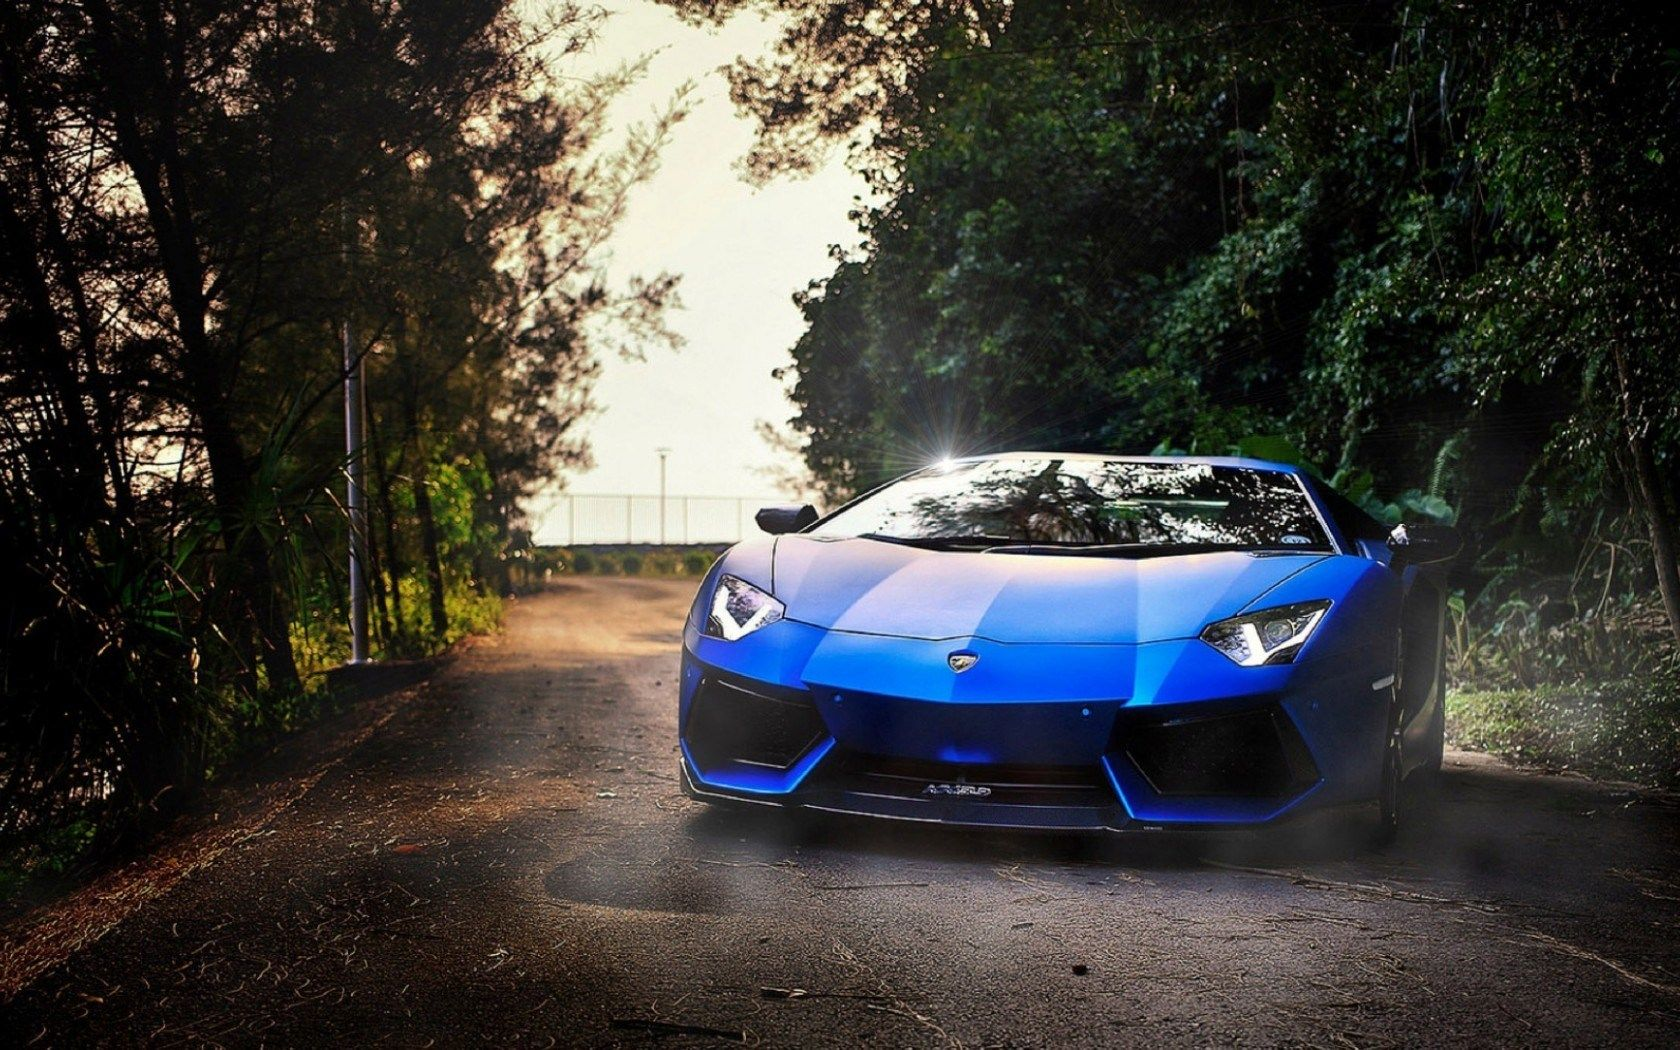 Hd wallpaper lamborghini - Lamborghini Hd Wallpapers Backgrounds Wallpaper 1920 1080 Wallpaper Lamborghini 33 Wallpapers Adorable